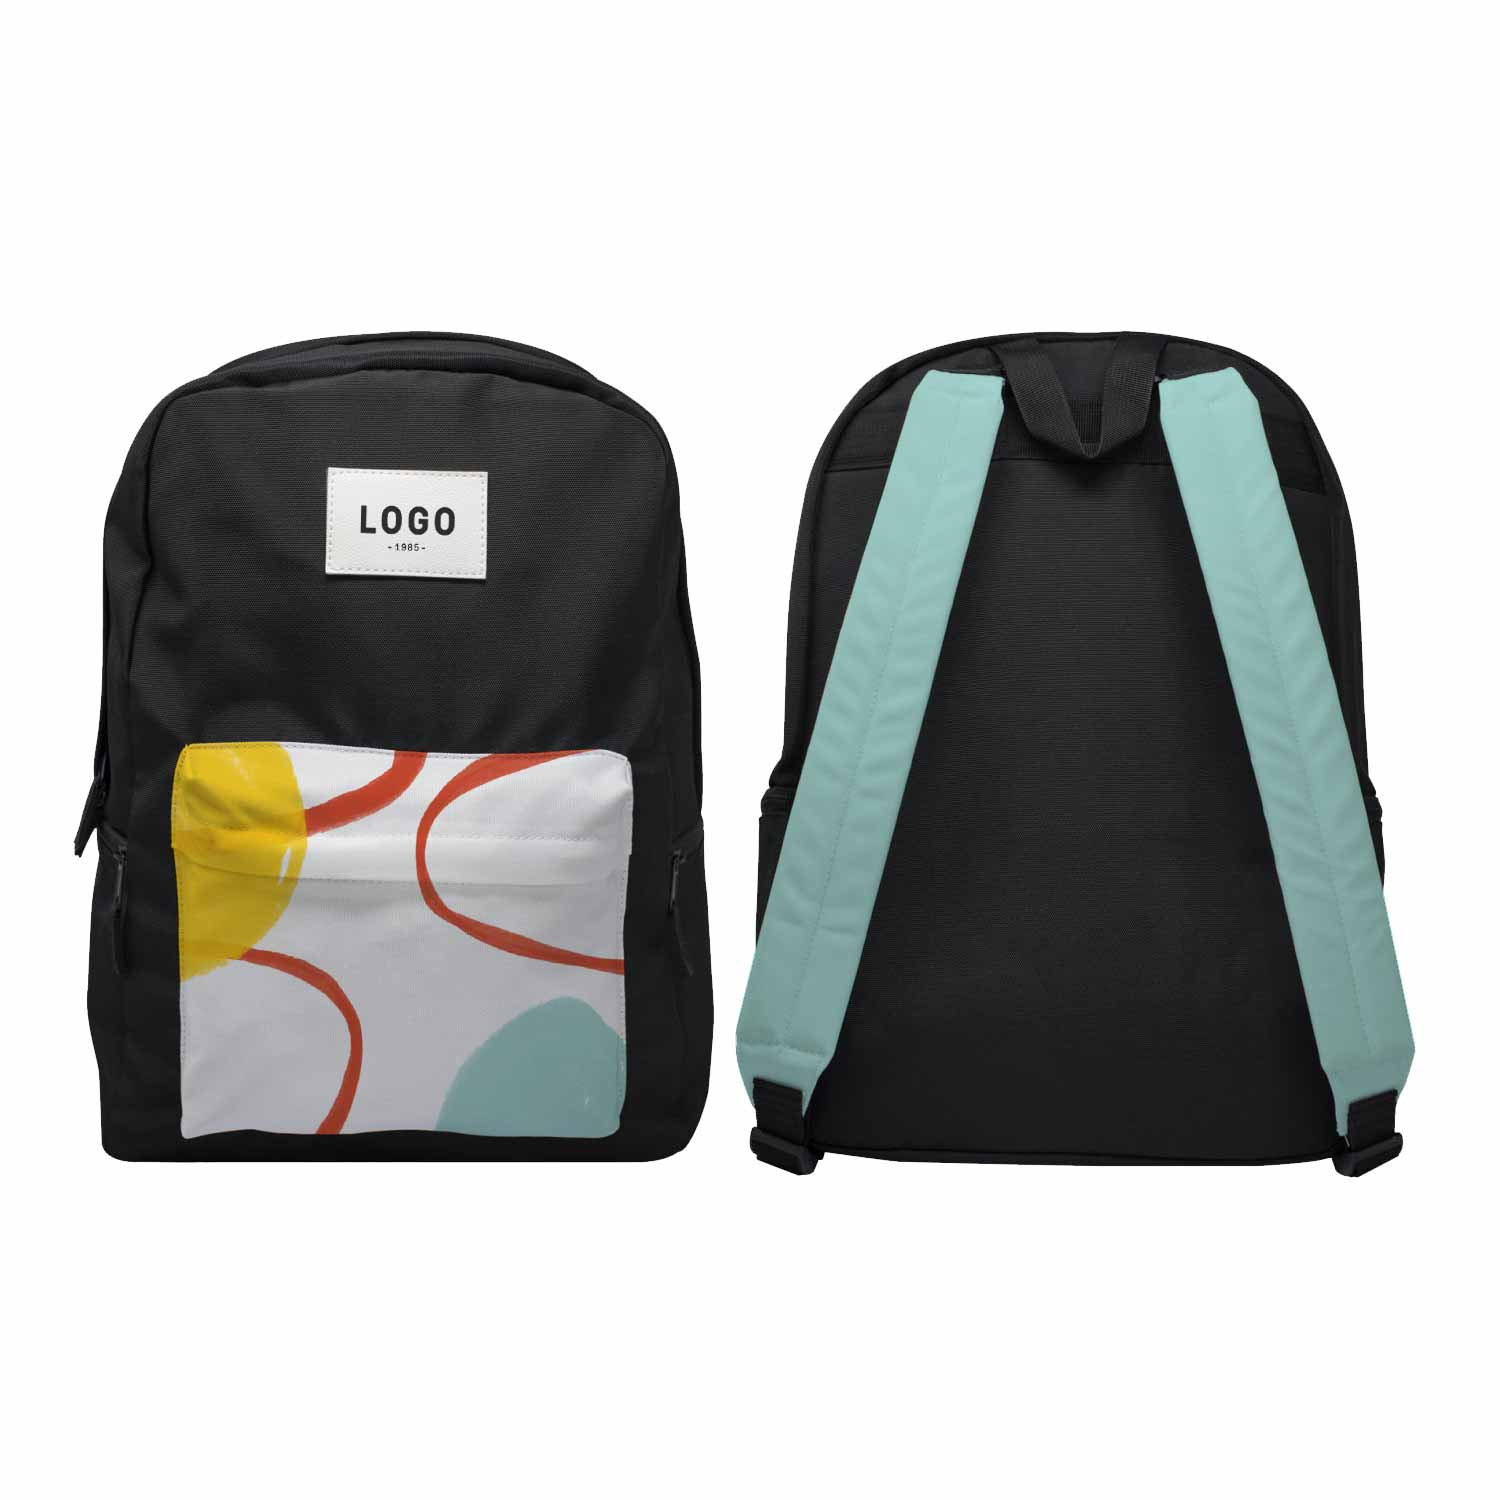 128190 oakland backpack full color imprint on patch front pocket and straps